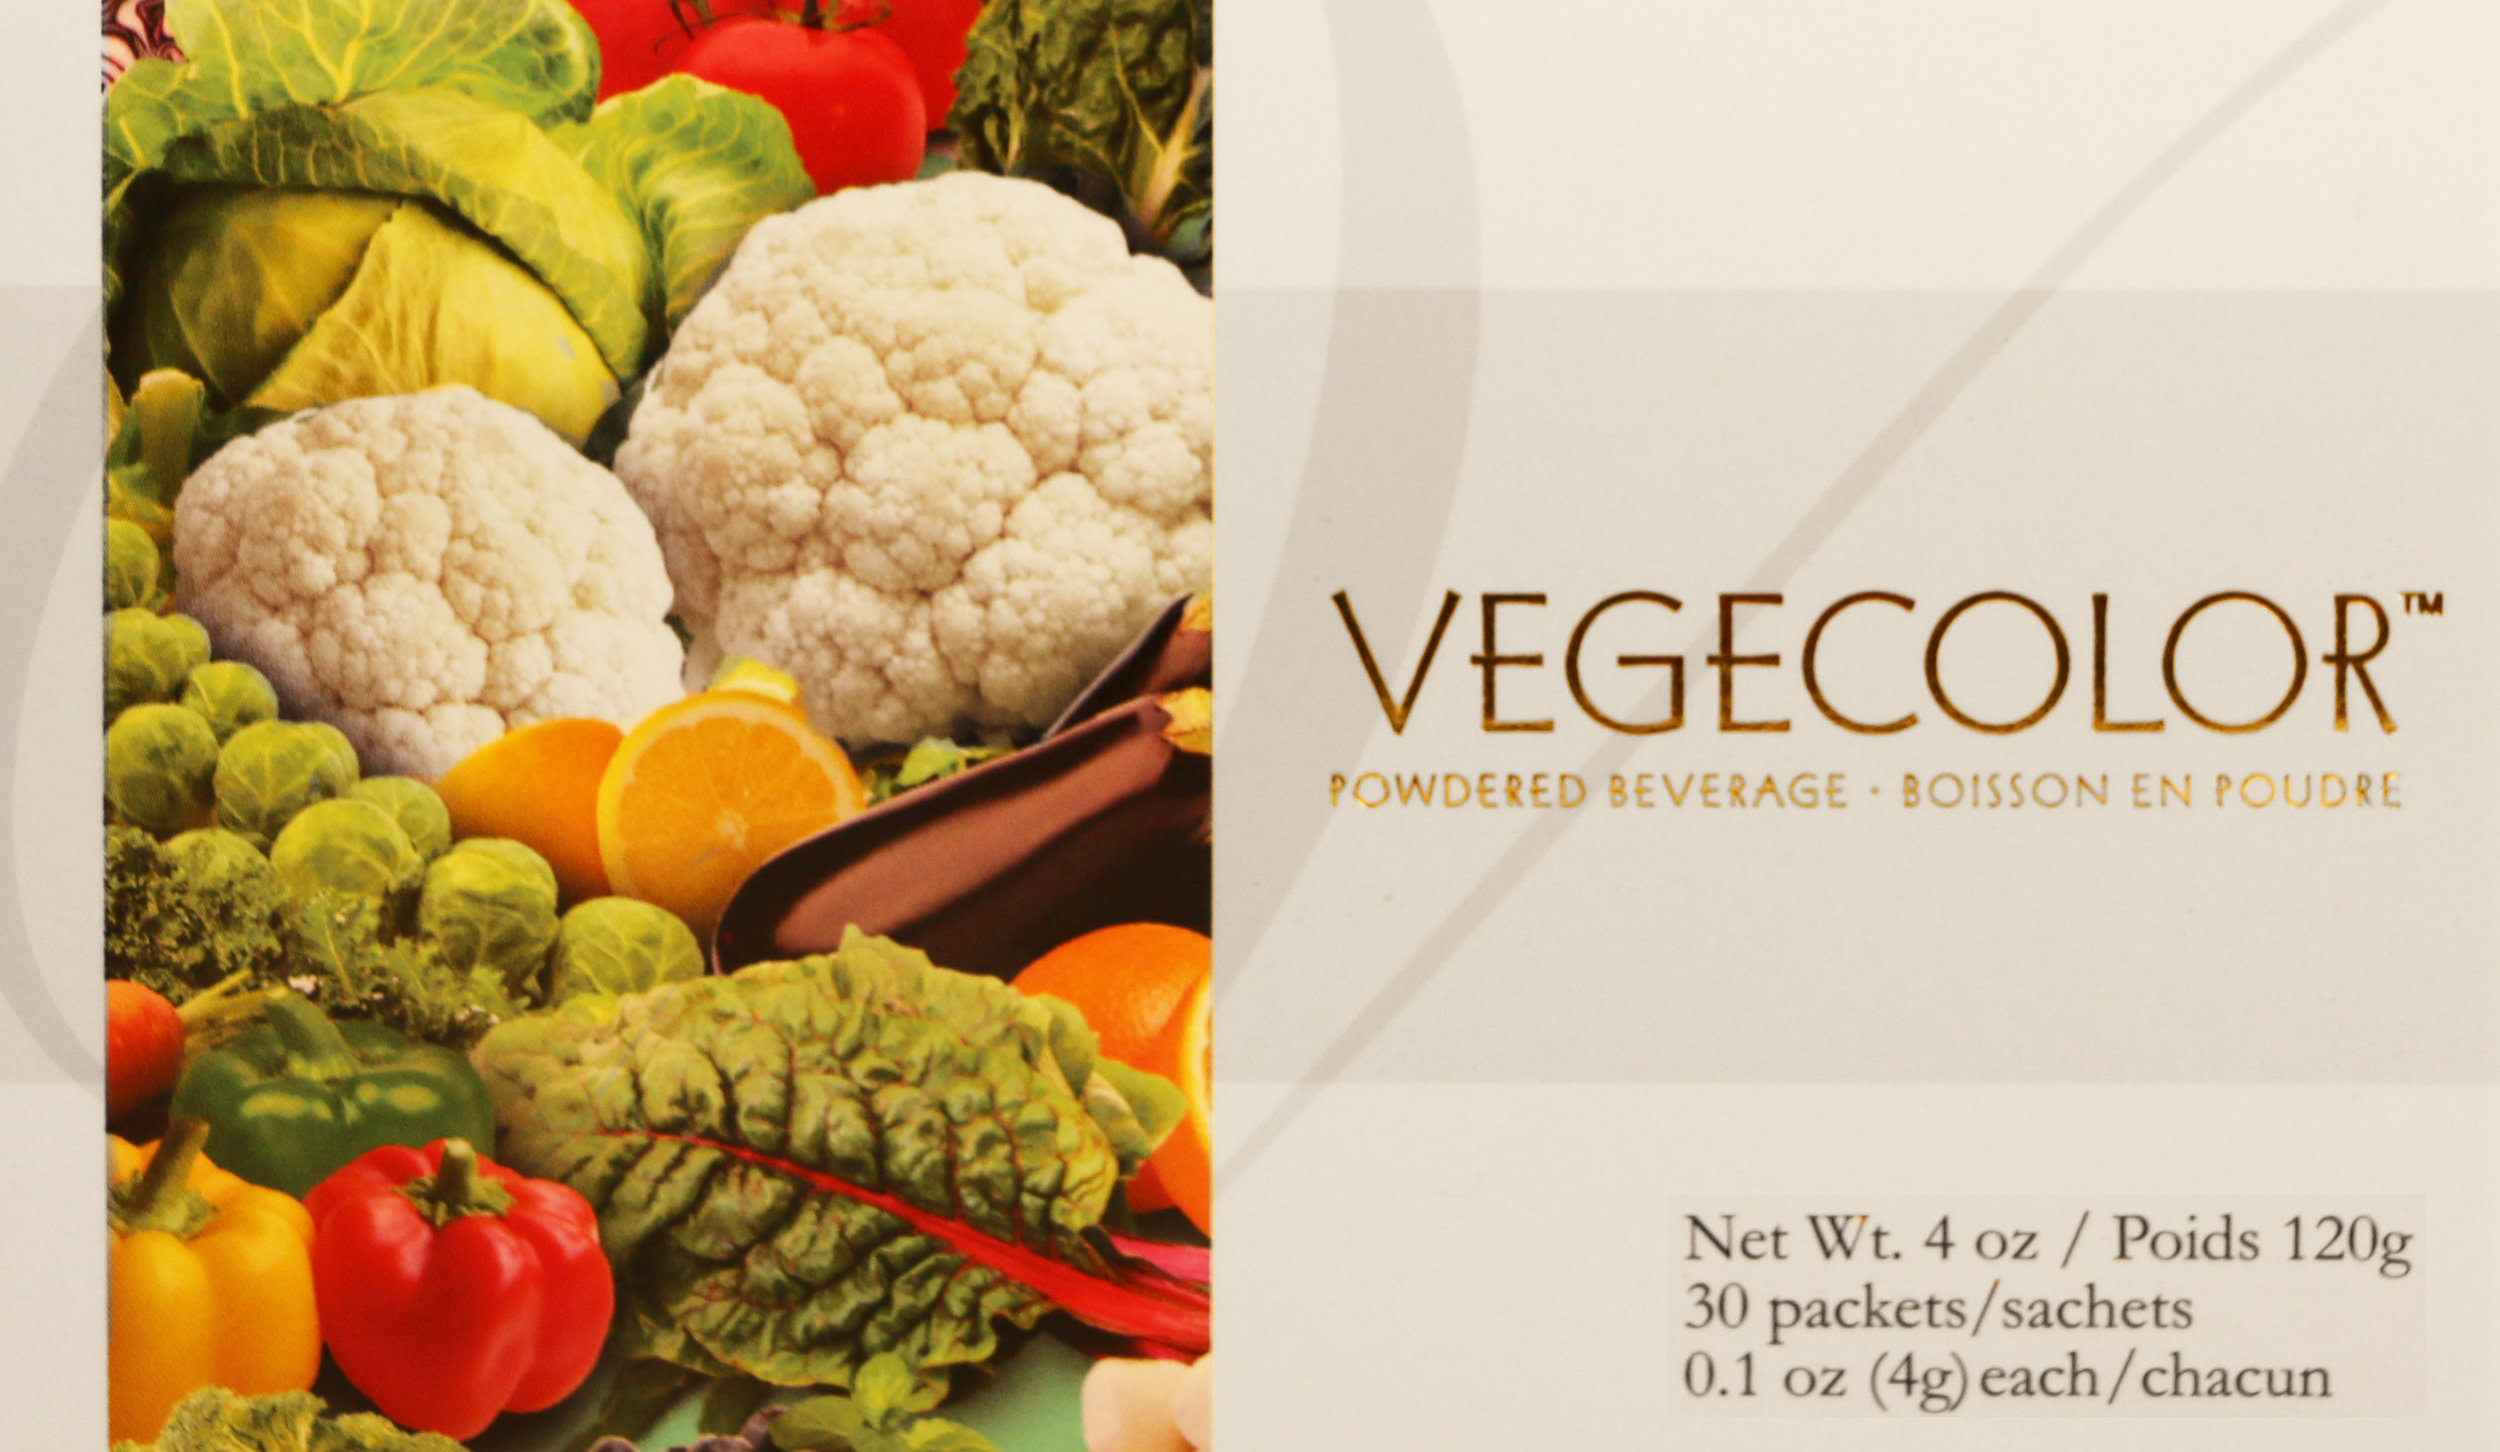 """vegecolor - A combination of 25 healthy fruits and vegetables.""""Low fat diets rich in fruits and vegetables (foods that are low in fat and may contain dietary fiber) may reduce the risk of some types of cancer, a disease associated with many factors (21 CFR 101.78).""""2 packets of Vegecolor are good source of dietary fiber.Featured Ingredients: Broccoli, Red Cabbage, Cauliflower, Spinach, Carrot, Red Beet, Mushroom, Snow Pea, Lettuce, Radish, Tangerine, Asparagus, Kale, Cabbage, Red Bell Pepper, Yellow Bell Pepper, Green Bell Pepper, Tomato, Swiss Chard, Cherry, Blueberry, Lemon Peel, Brussels Sprout, Eggplant"""